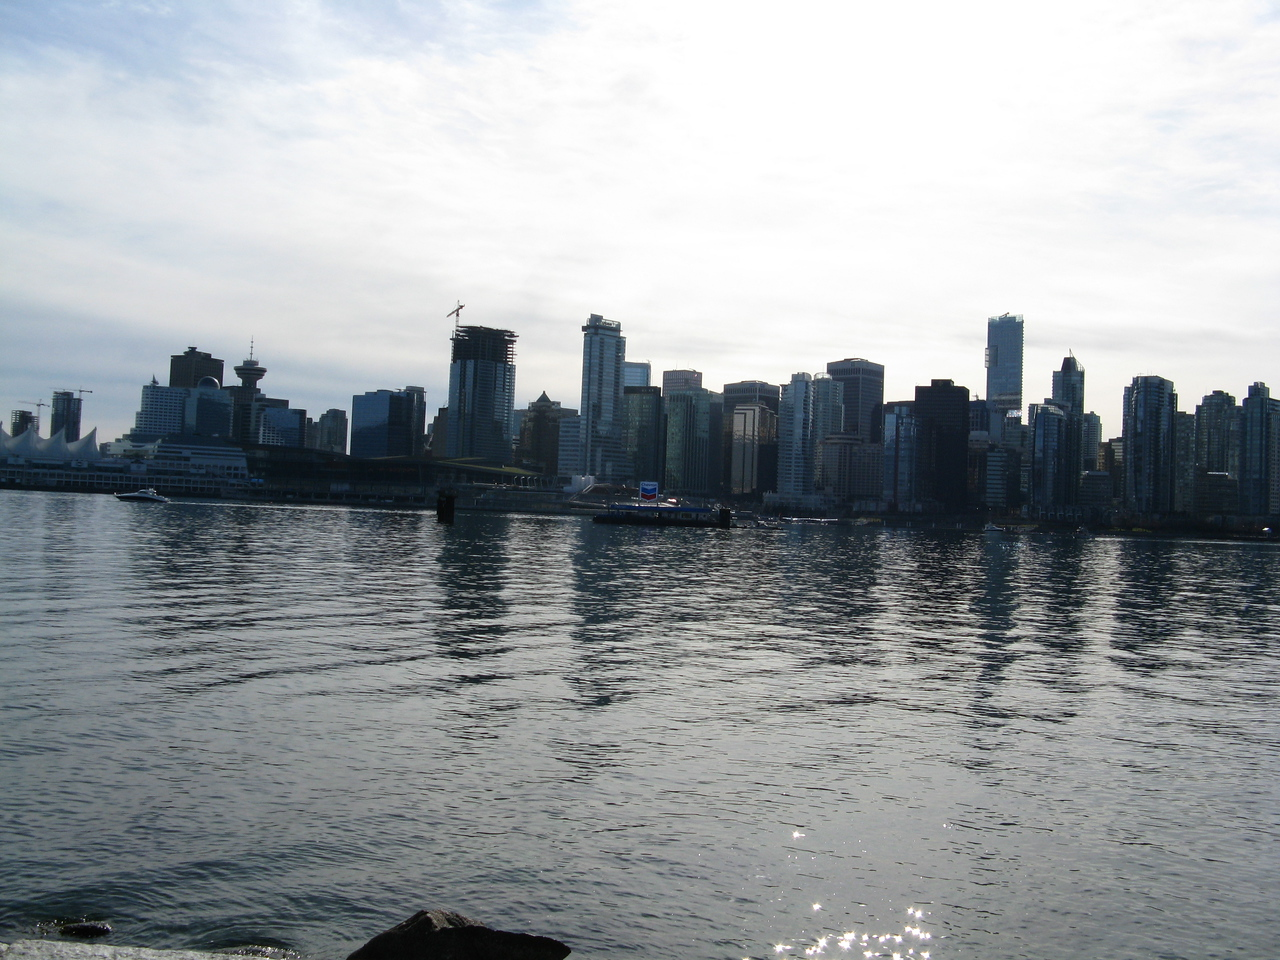 Downtown Vancouver from across Coal Harbour.